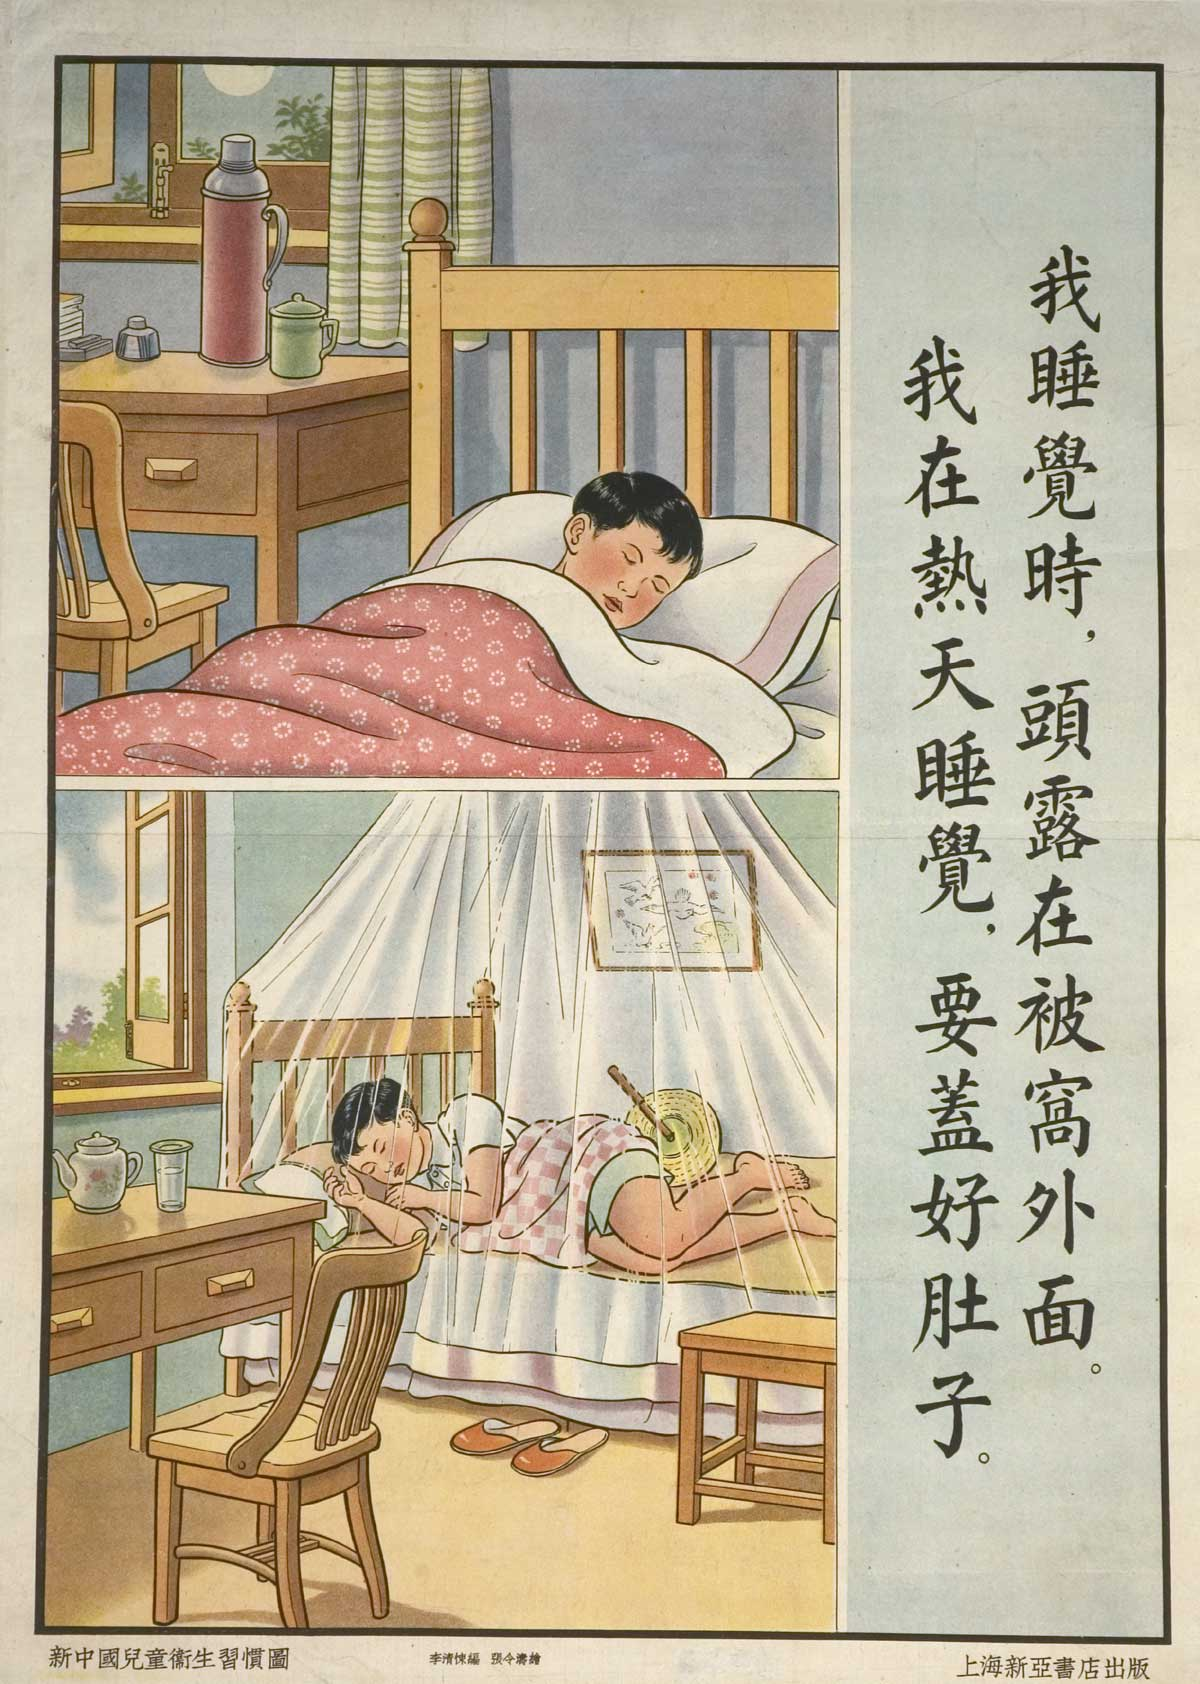 Chinese Public Health Posters: Hygiene Education For Children